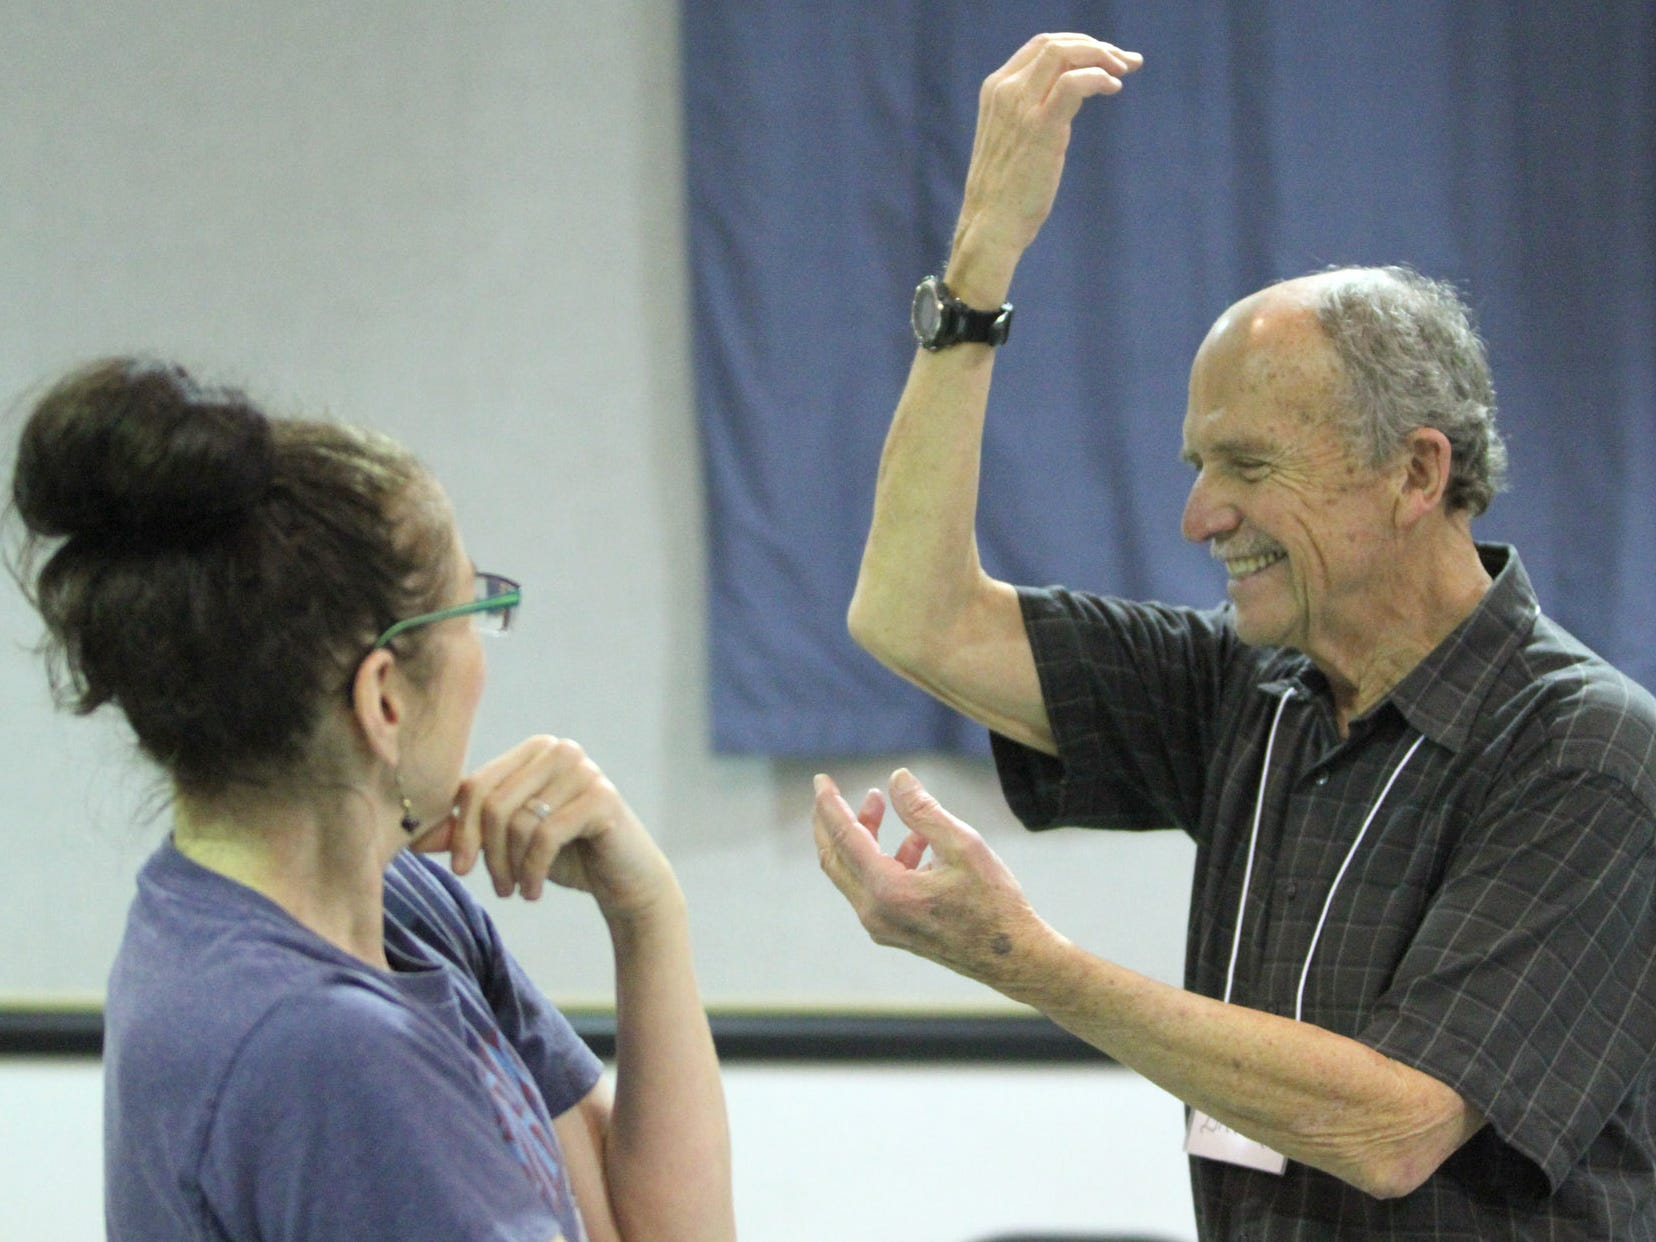 Dance instructor Deborah Birrane enjoys a laugh with Bill Meierding as she arranges him in a frozen position during the Dance for Parkinson's class.